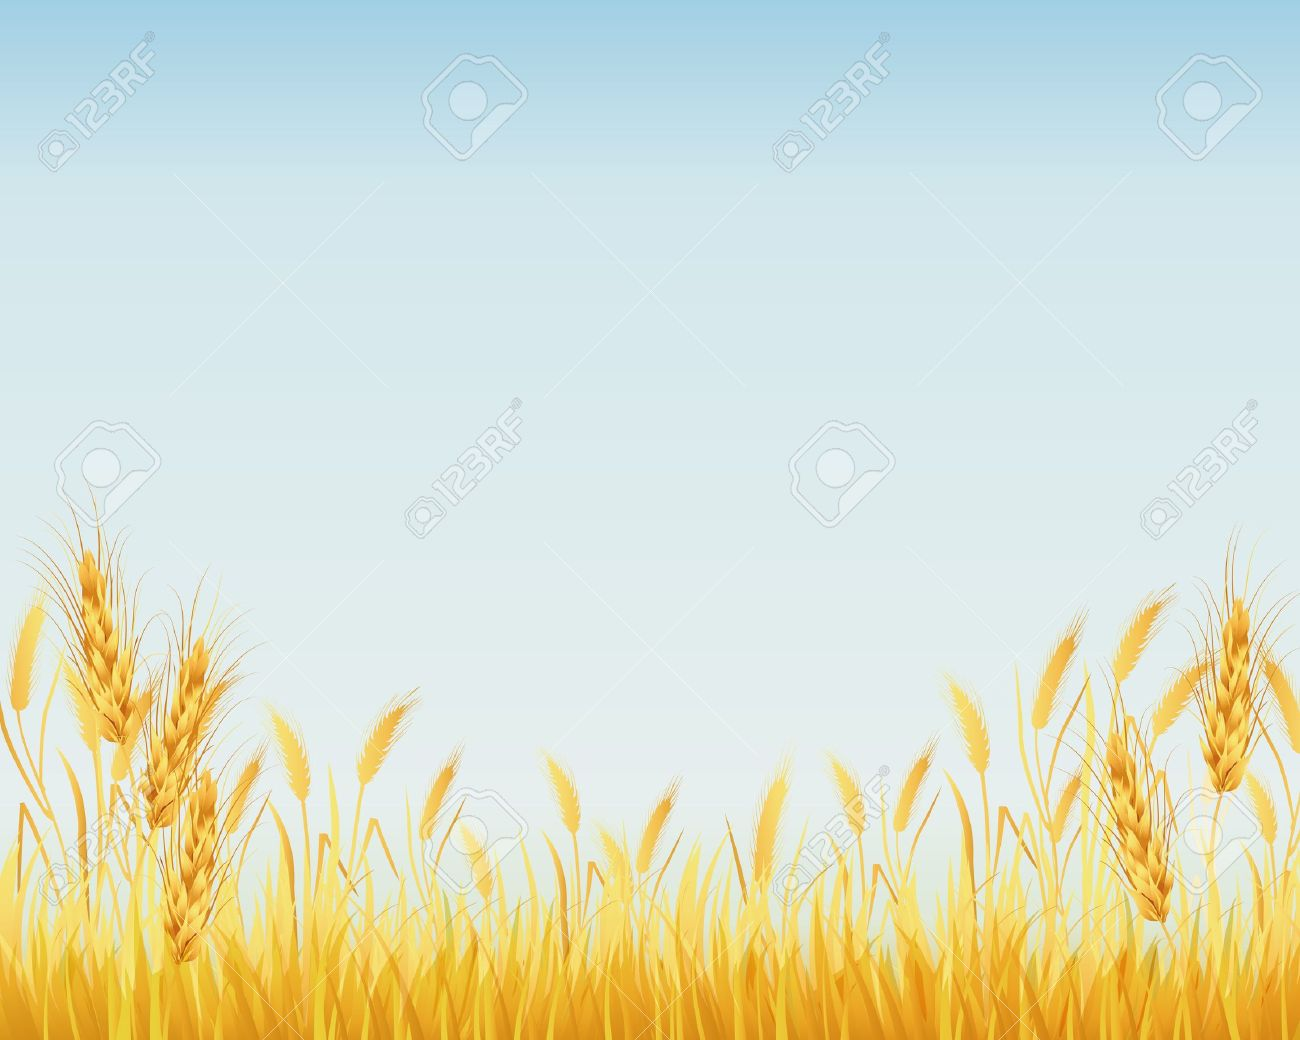 1,289 Rice Fields Stock Vector Illustration And Royalty Free Rice ...